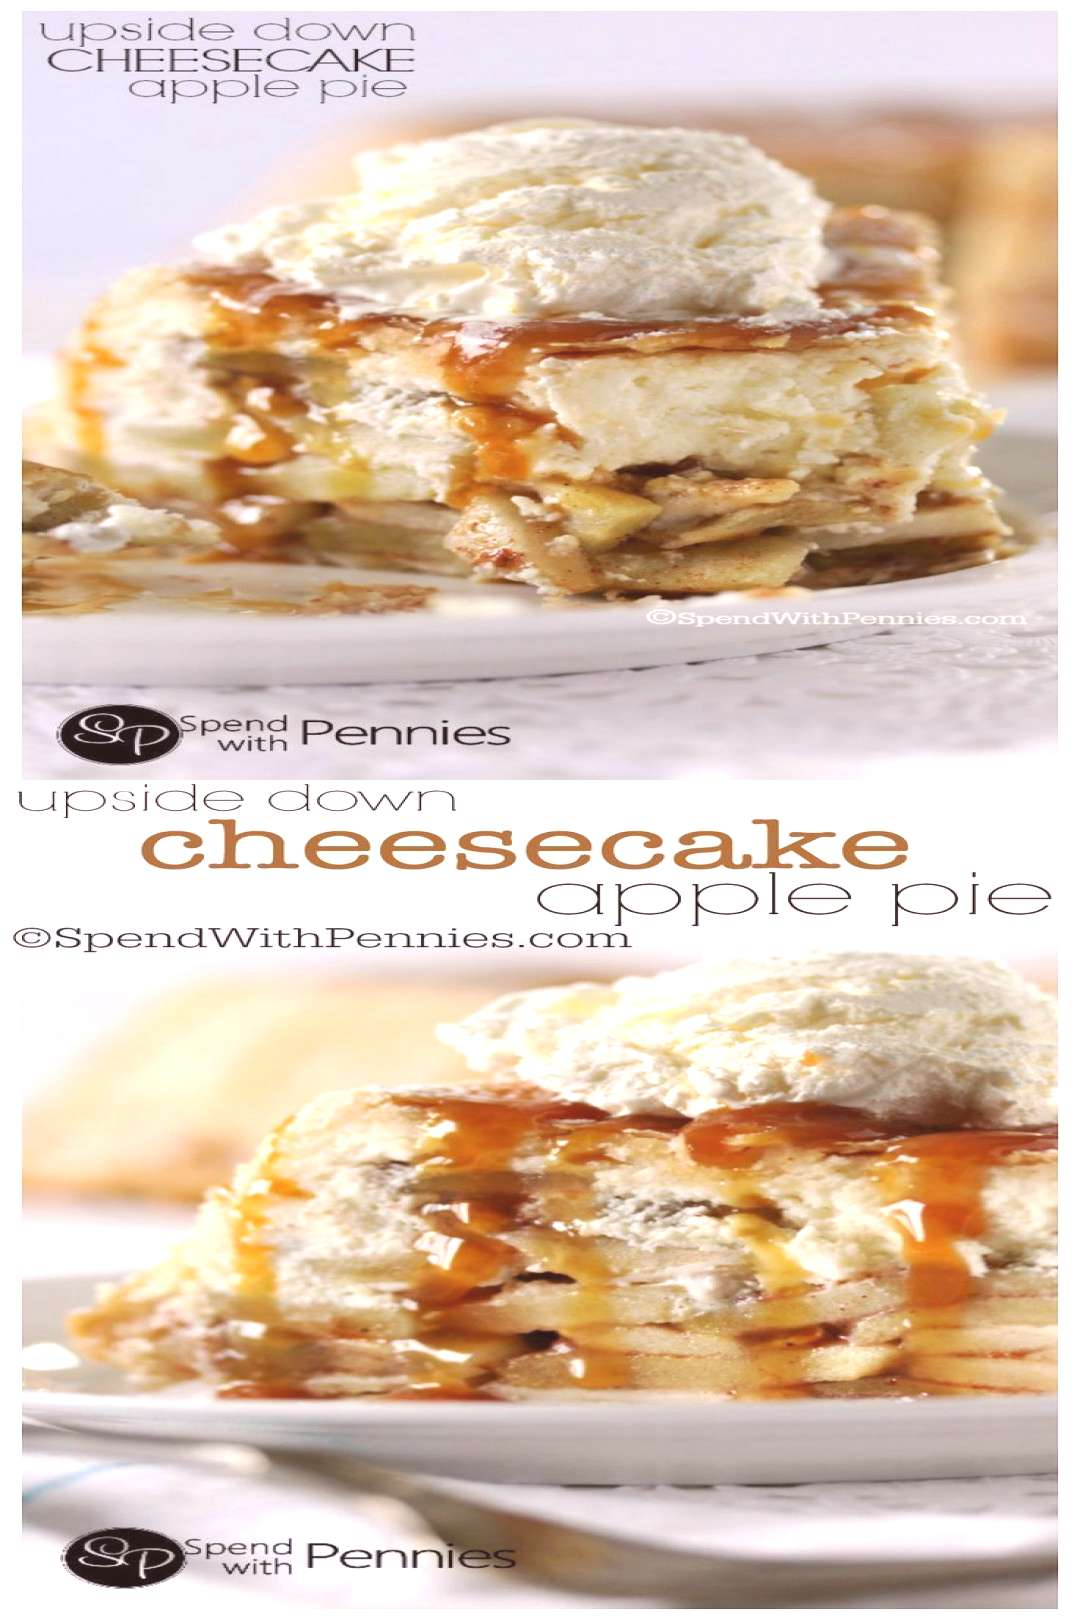 Upside Down Cheesecake Apple Pie! - Spend With Pennies -  Upside Down Cheesecake Apple Pie! This re